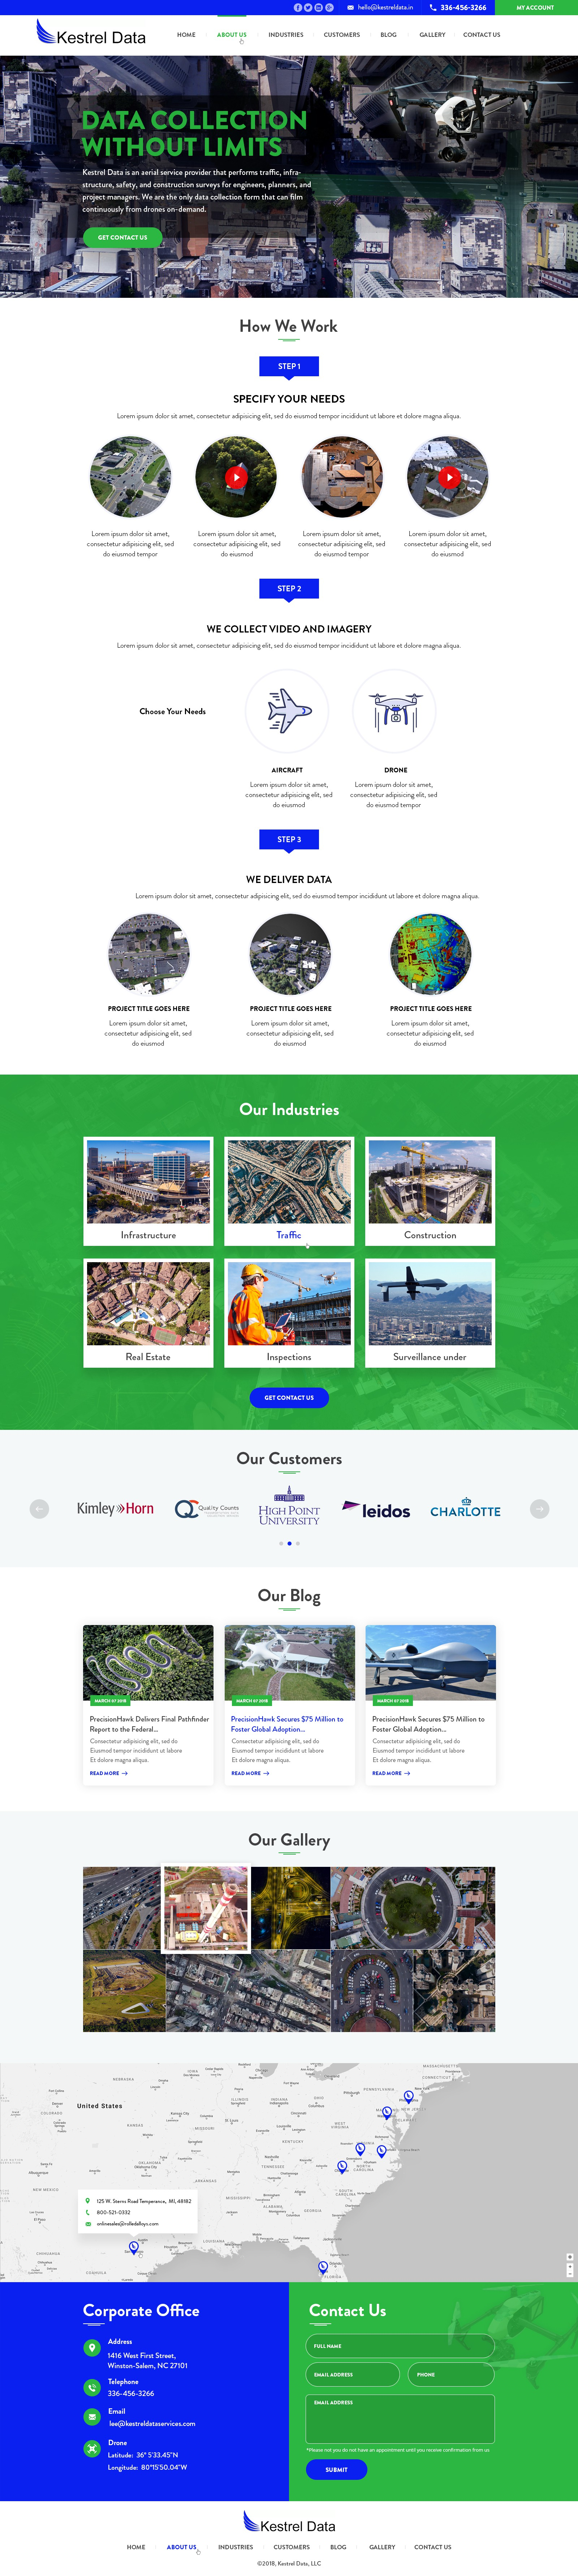 Aerial Data Collection Service Needs Everything, Starting with Website